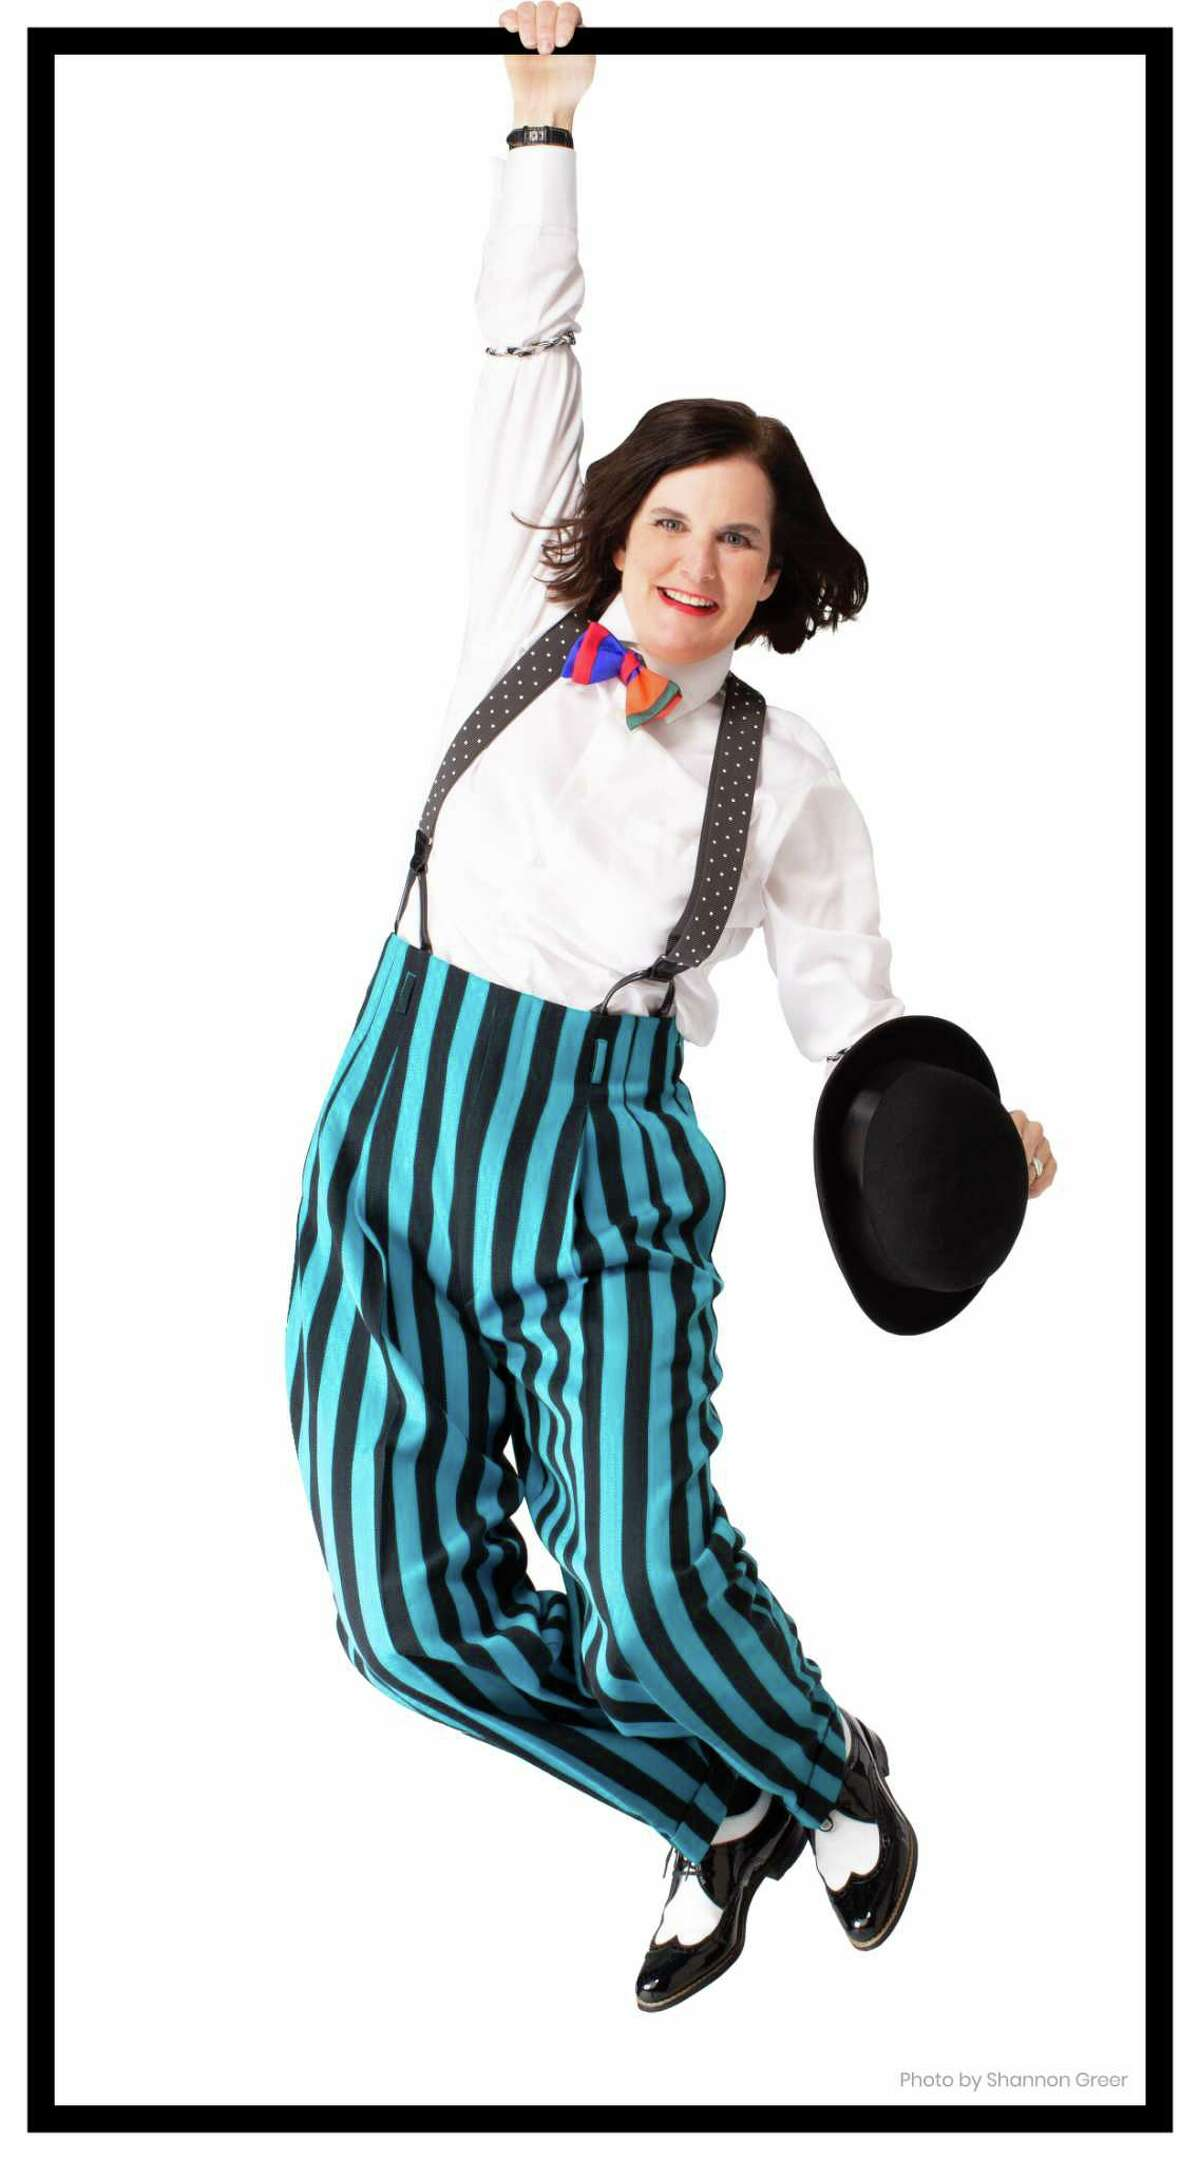 Comedian Paula Poundstone will perform at the Charline McCombs Empire Theatre Sept. 16.